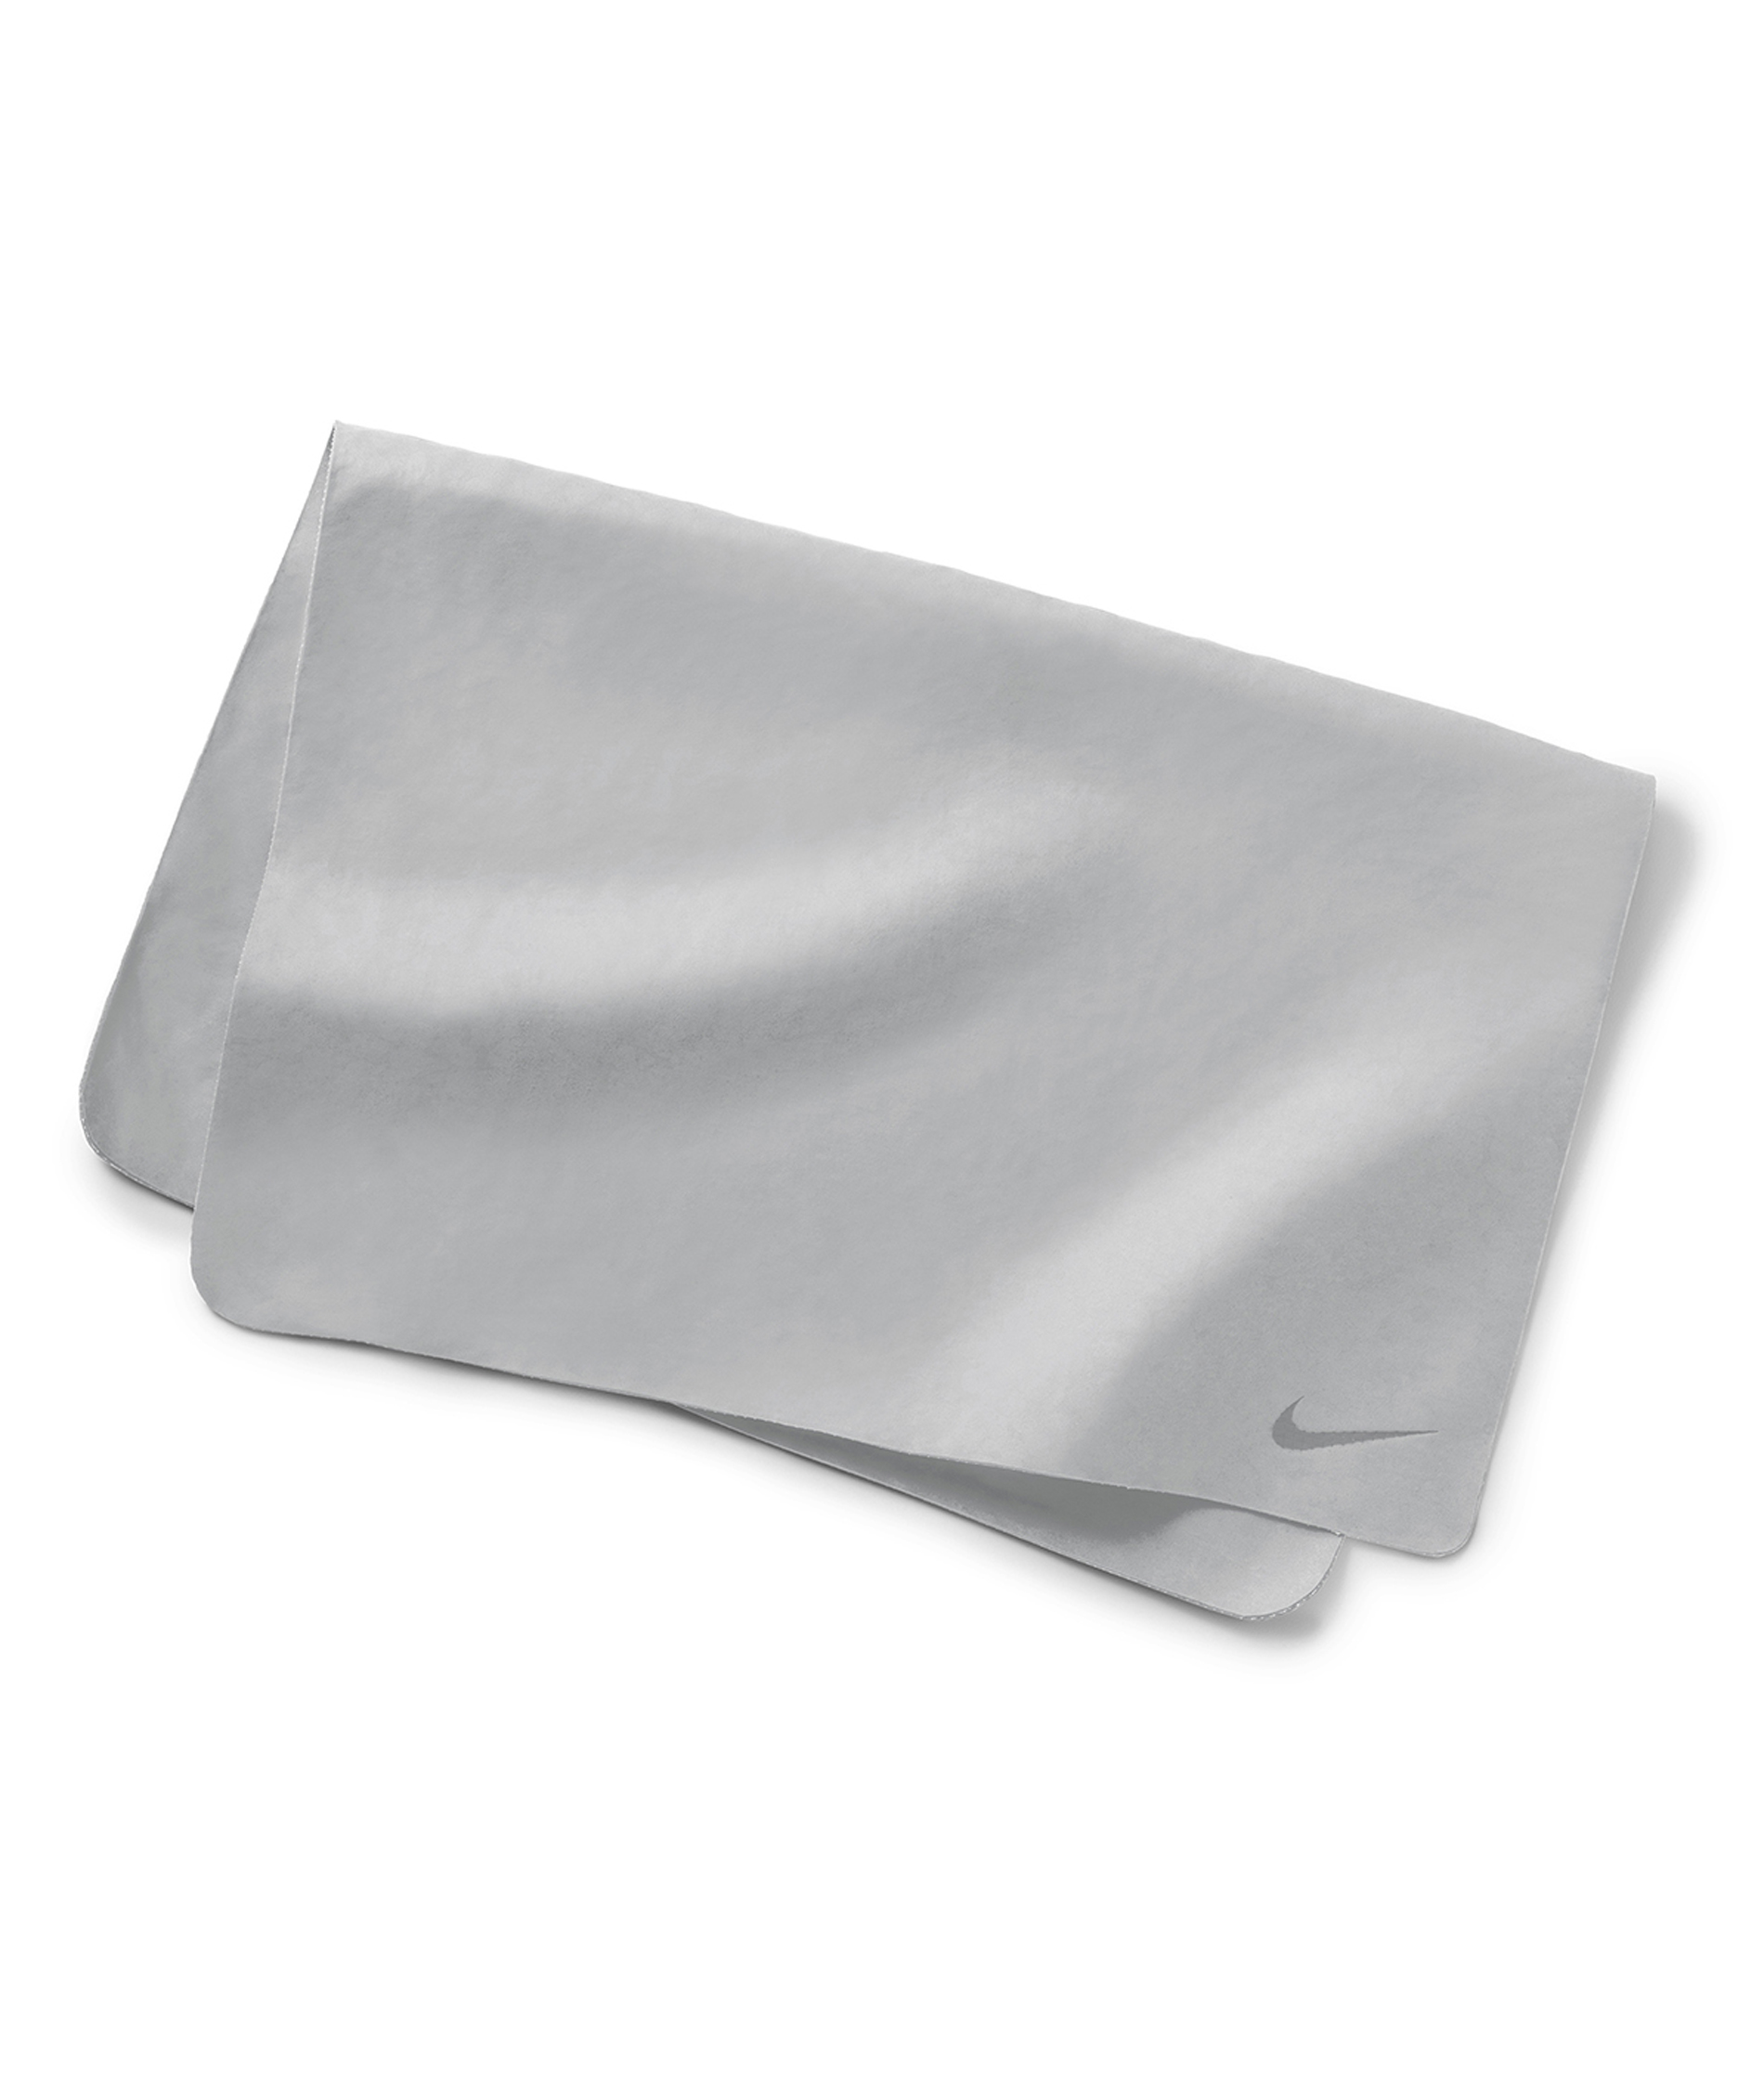 Nike Swim Large Hydro Towel - Grey